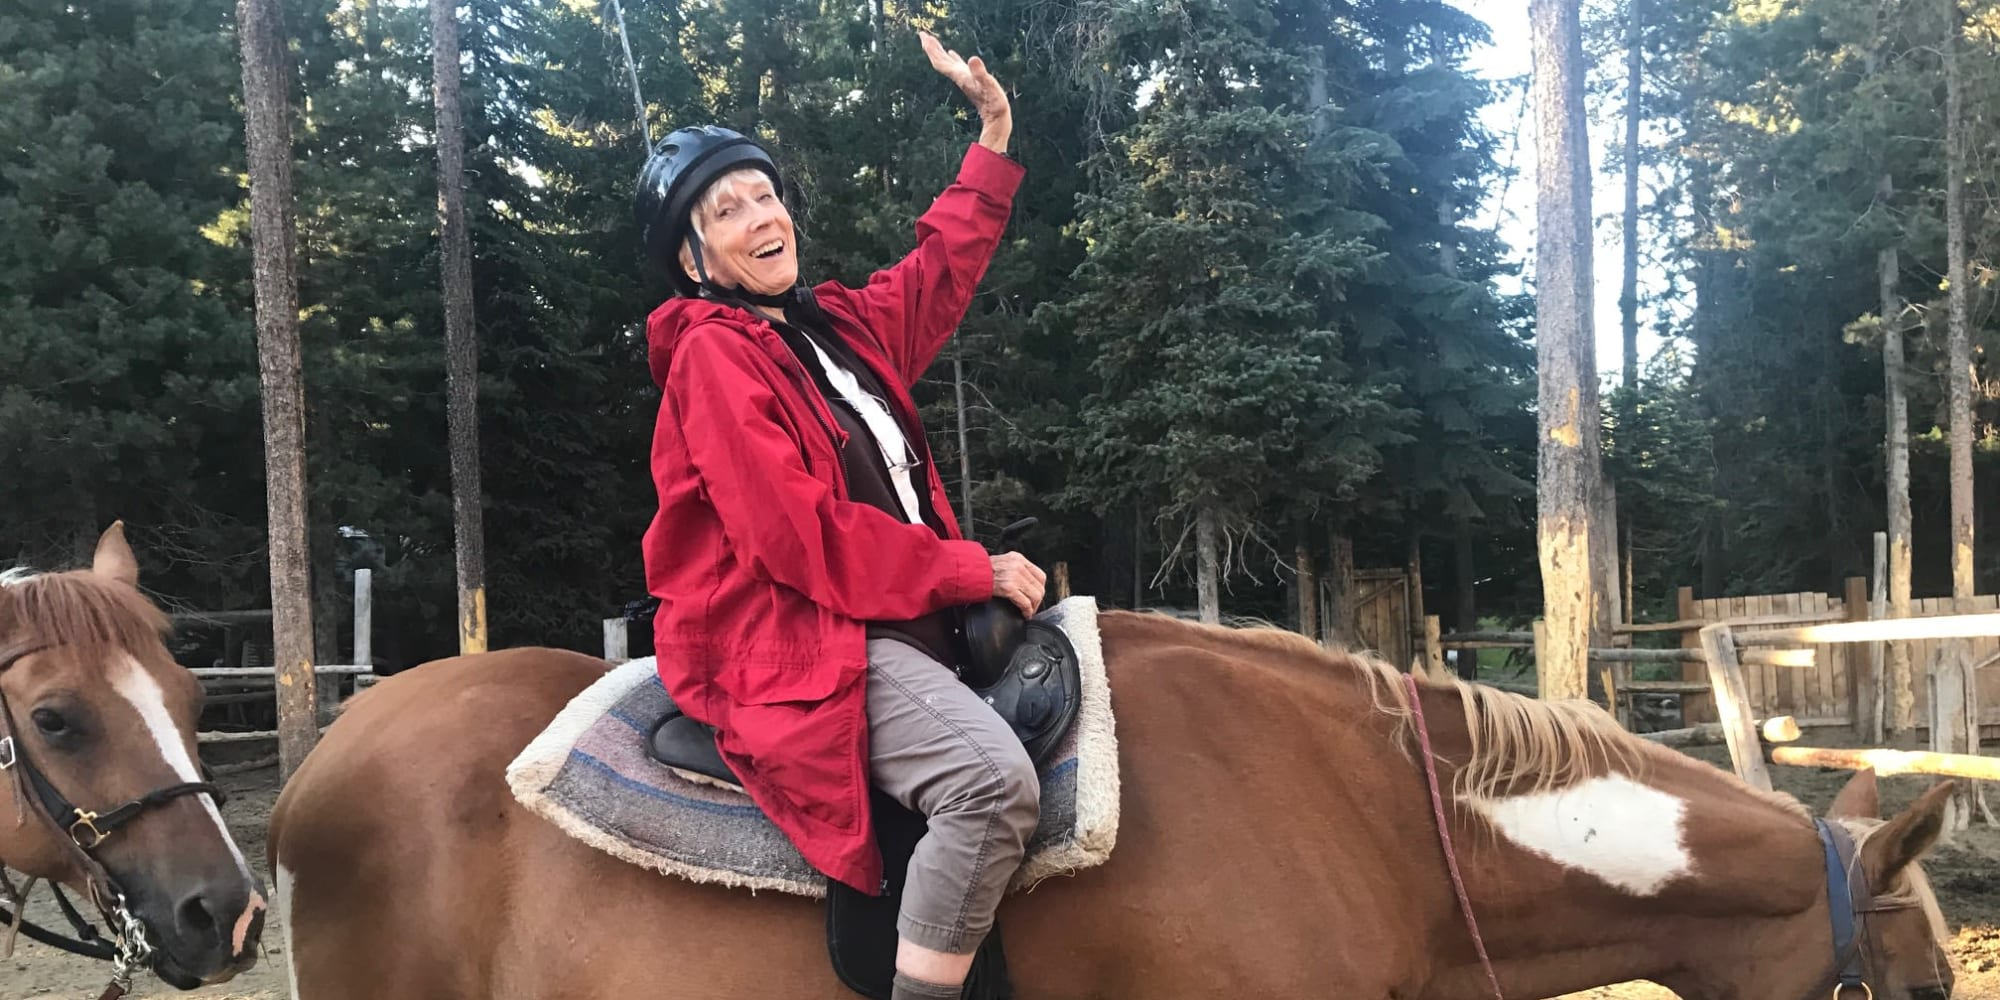 A resident from Camellia Gardens Gracious Retirement Living in Maynard, Massachusetts riding a horse